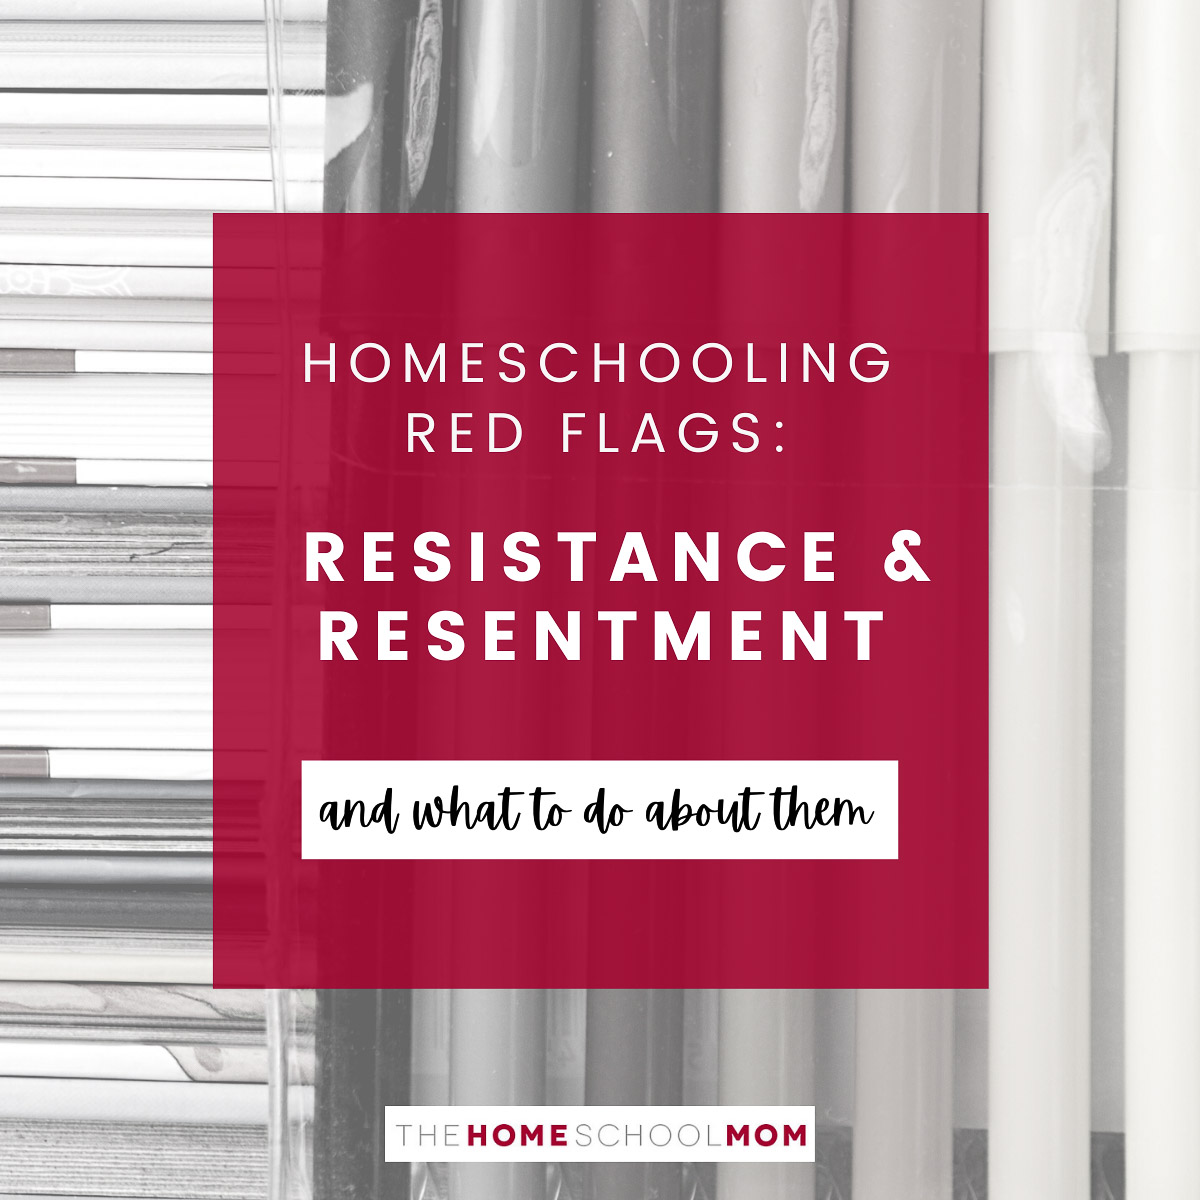 Homeschooling red flags: Resistance & Resentment and what to do about them